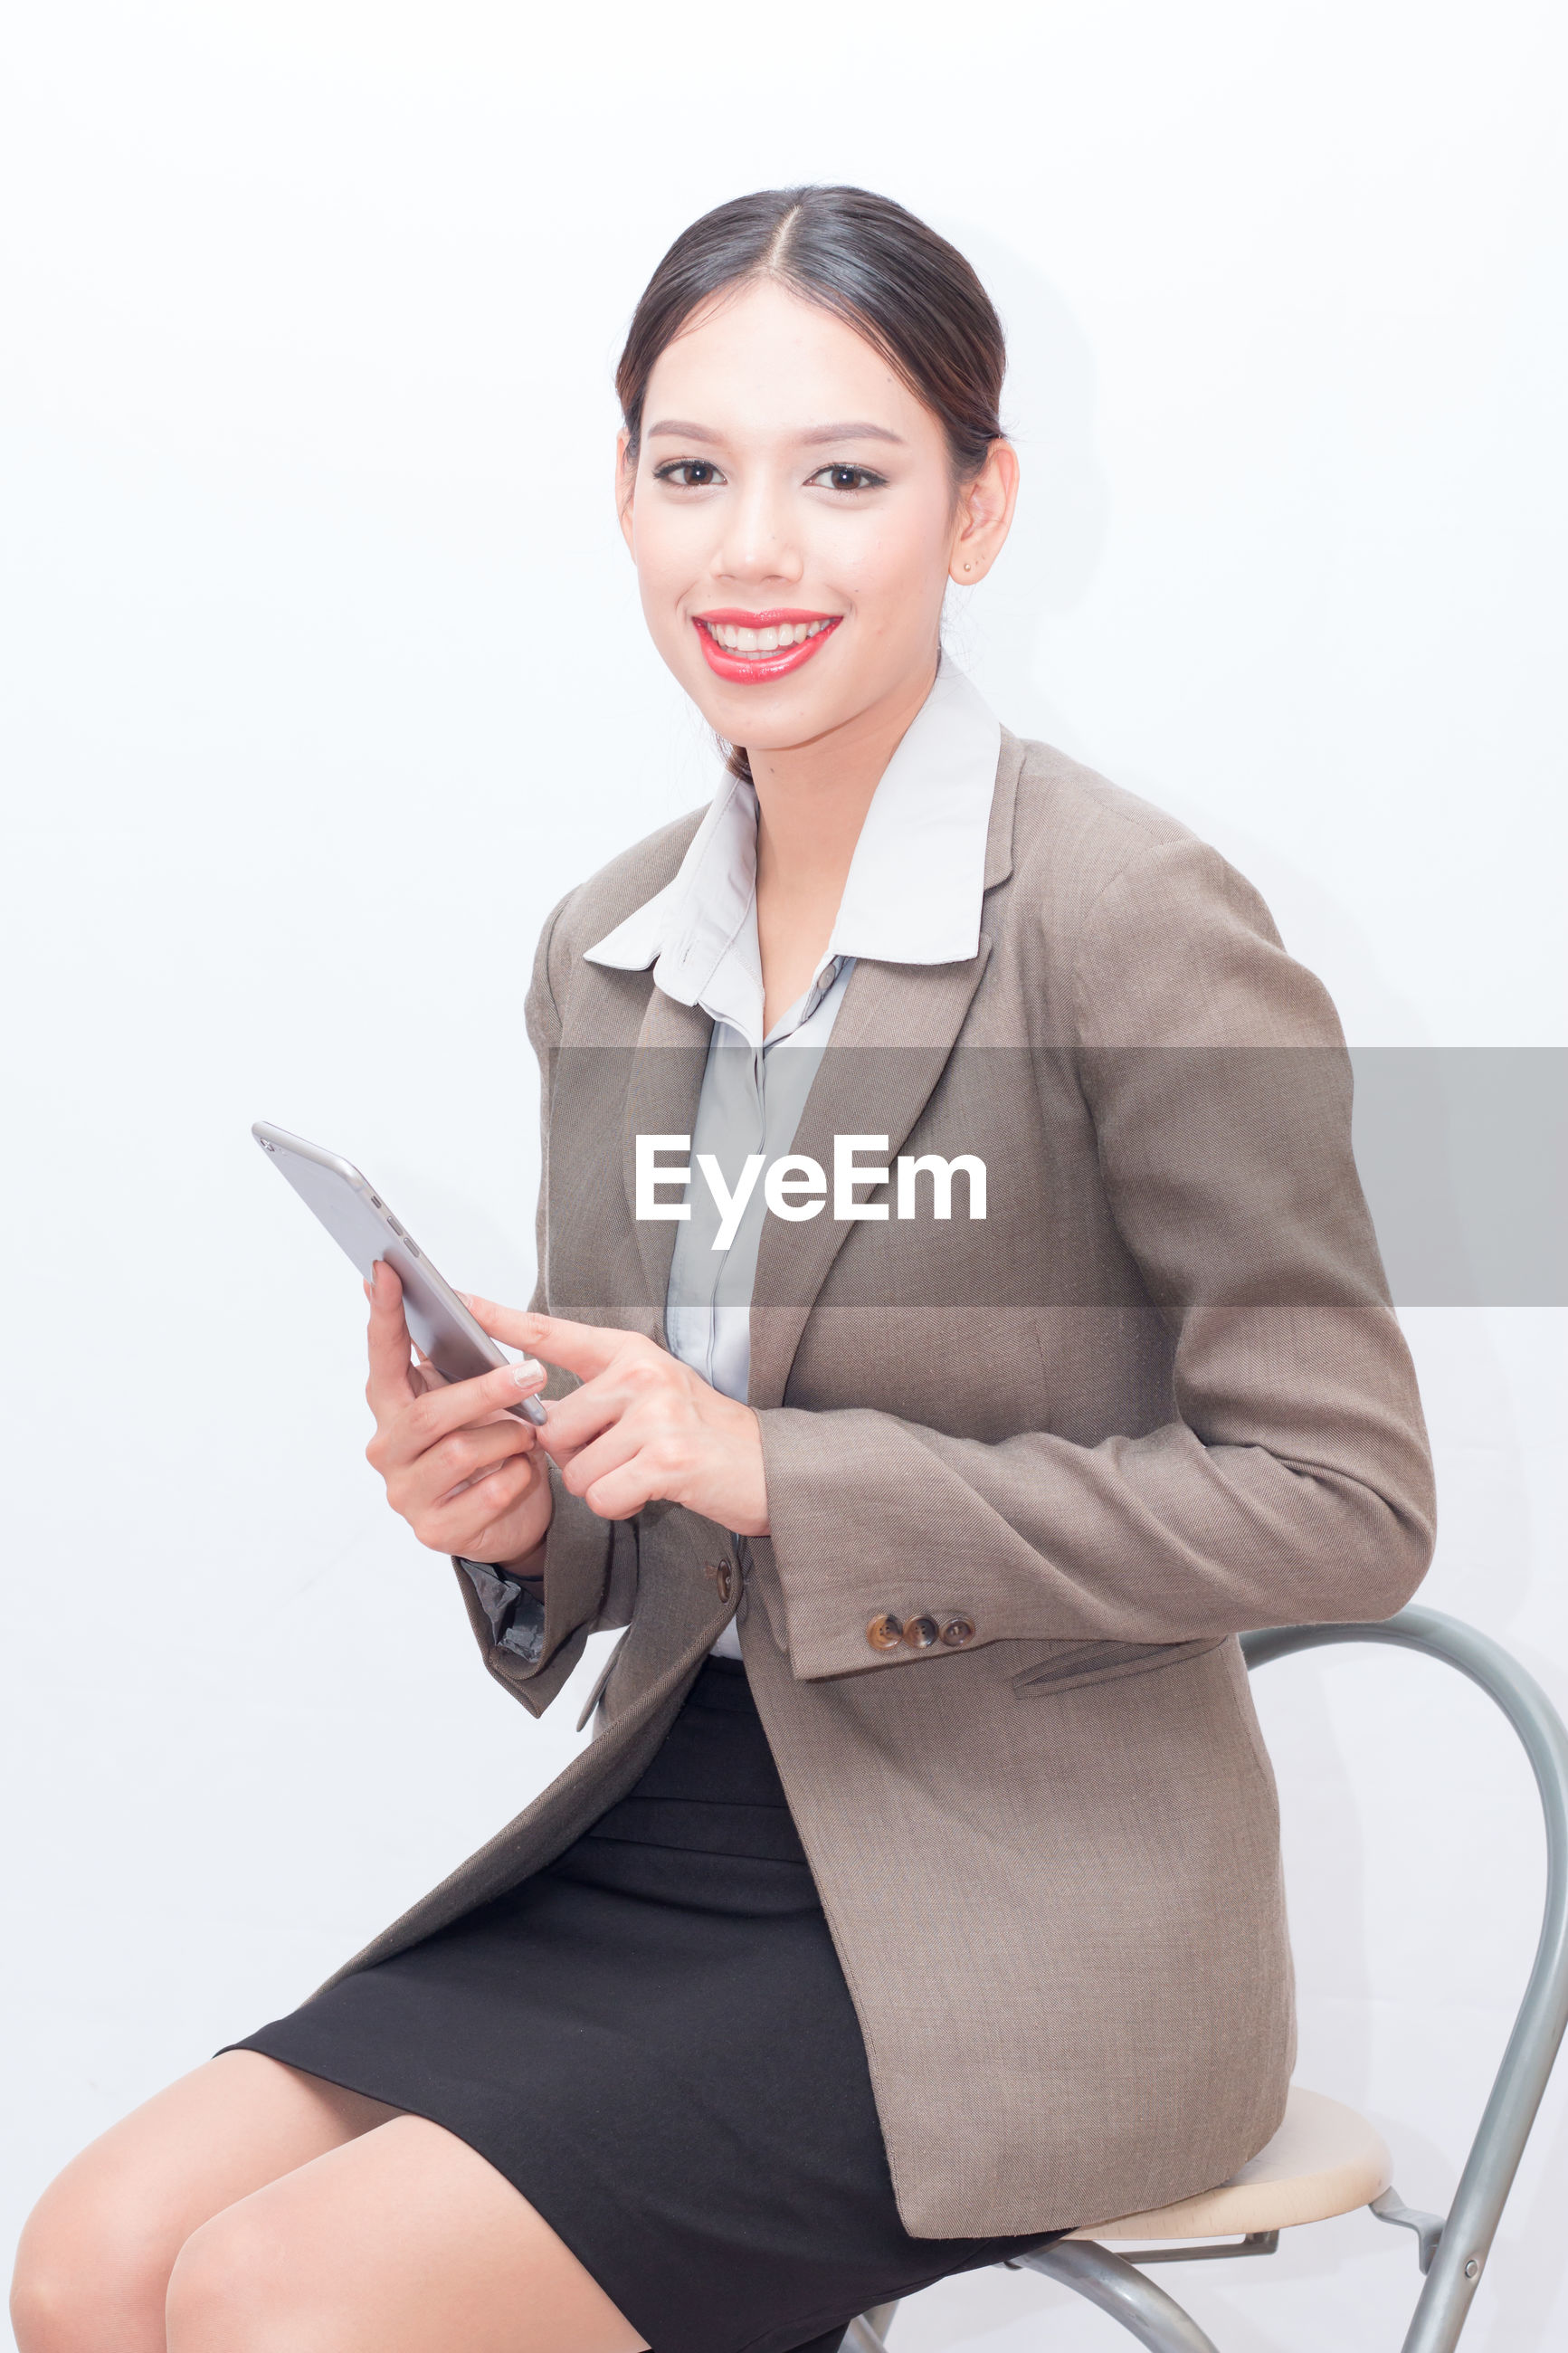 Portrait of businesswoman using digital tablet against white background